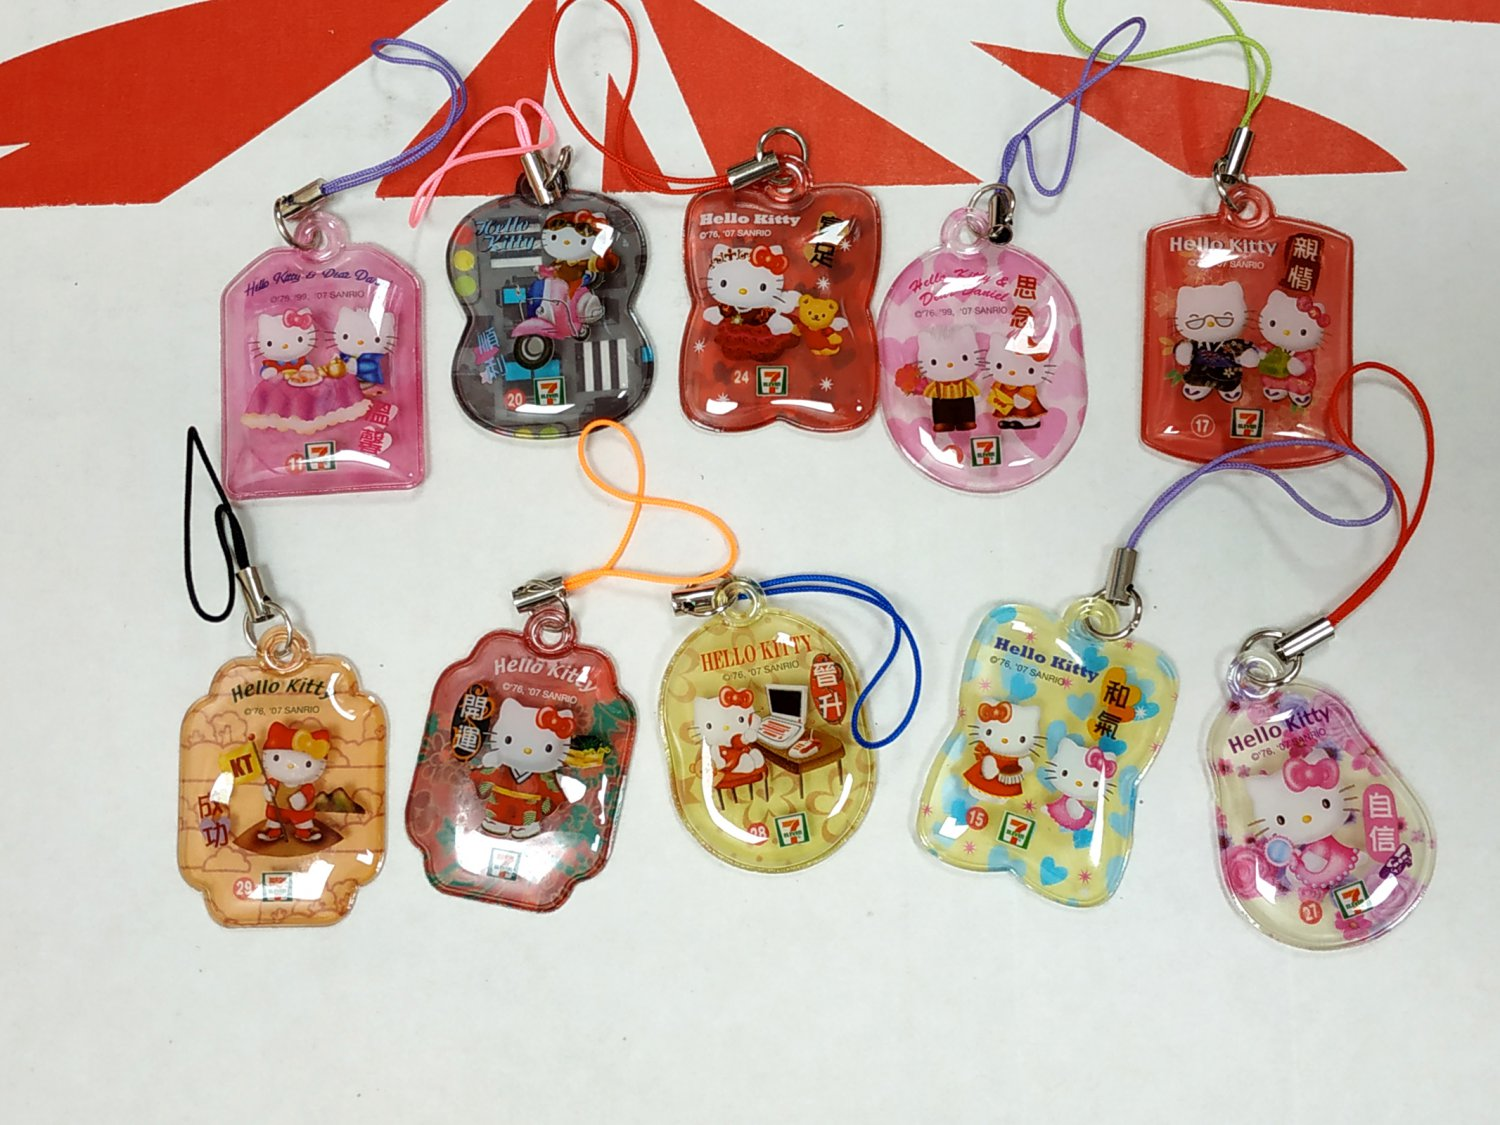 Collectible Hong Kong 7-Eleven Hello Kitty Well Wishes Amulets 10 Pcs Set girls ladies woman